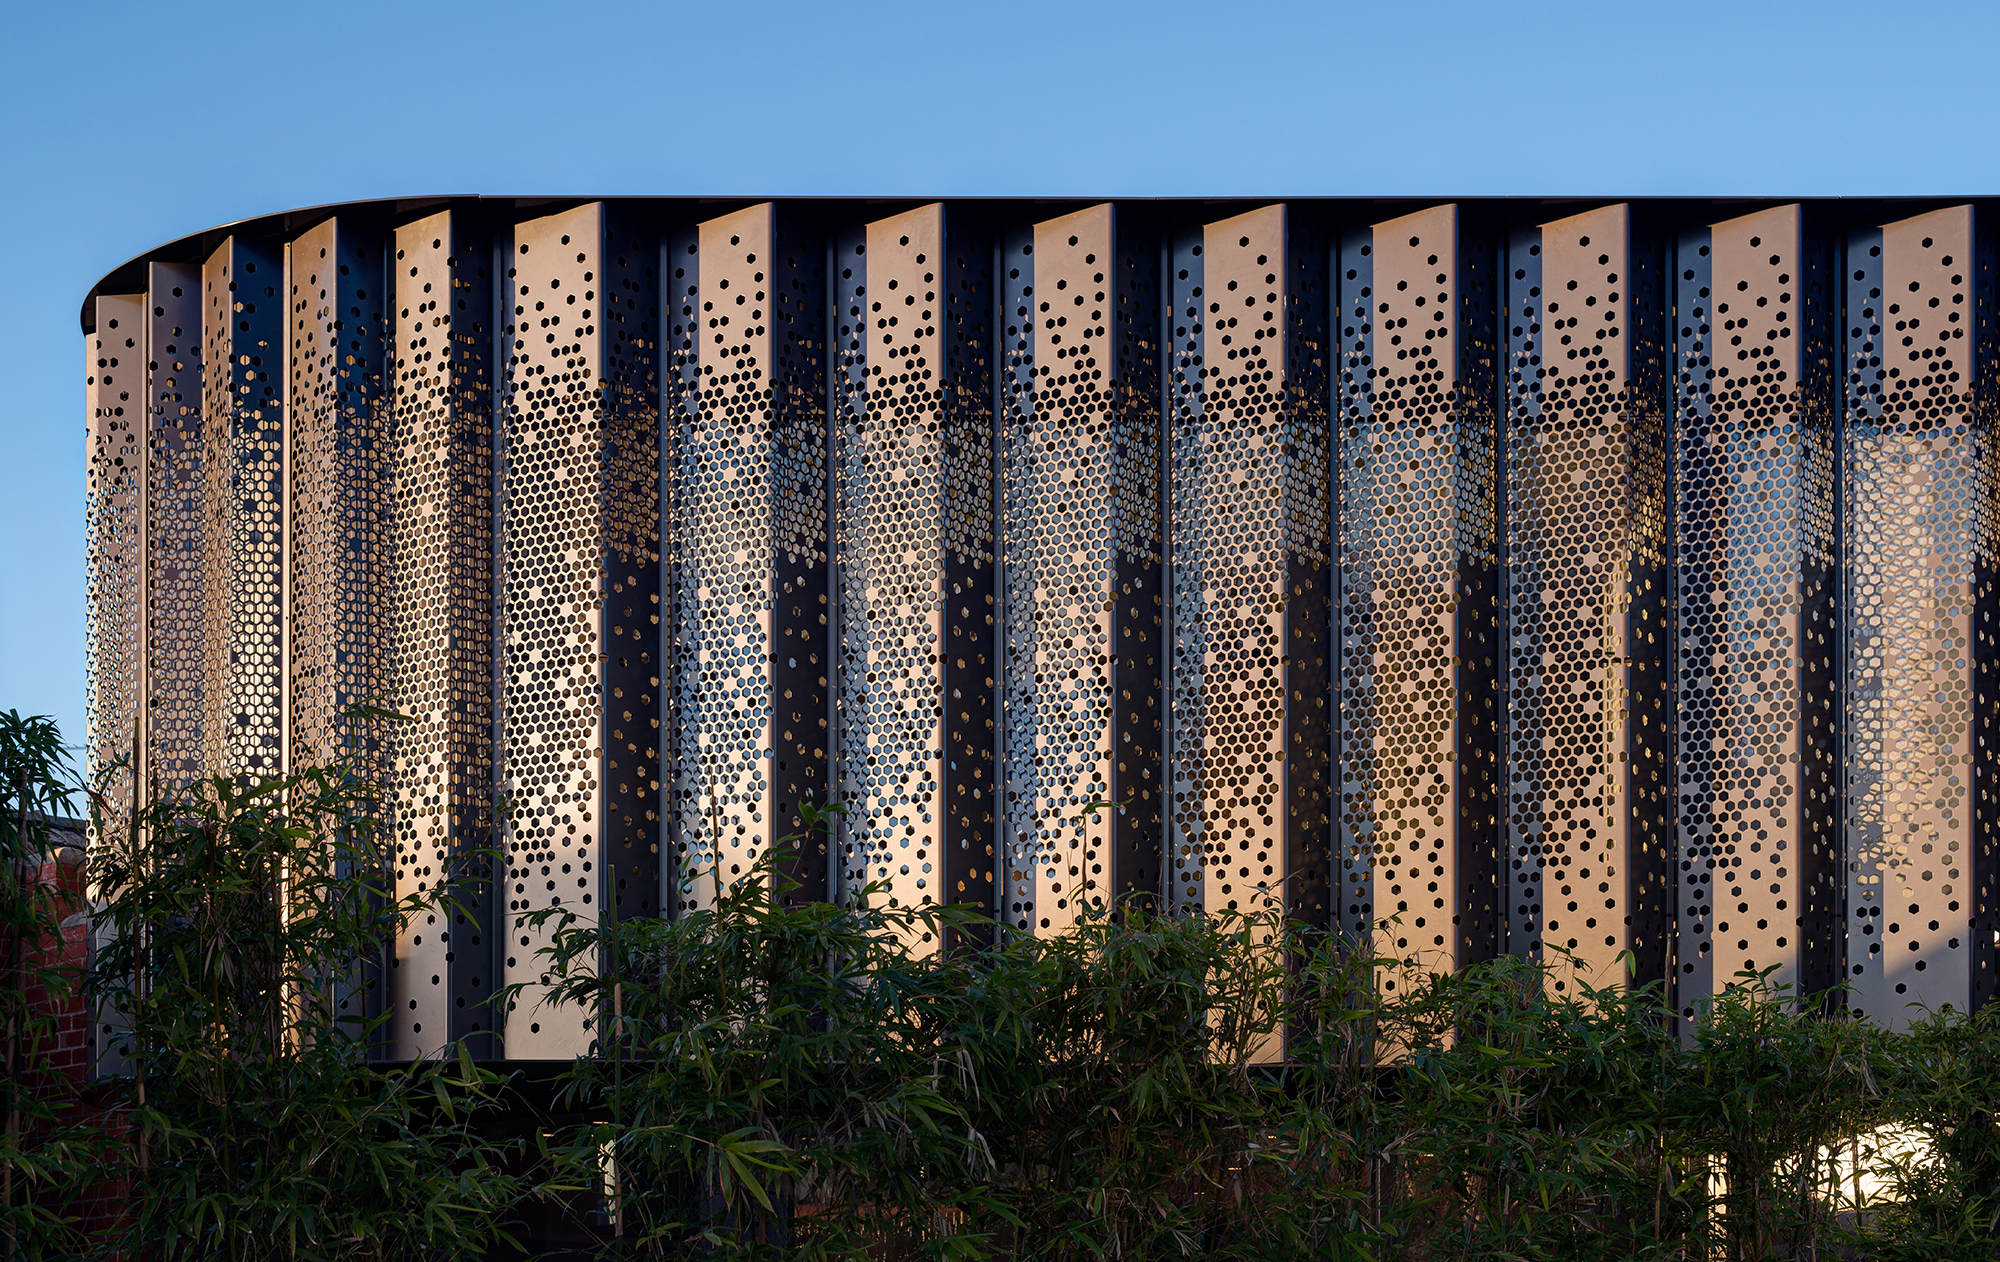 Project Title: Albert Park Curved Pleated Facade by AdeB Architects Image Credits: Jaime Diaz-Berrio